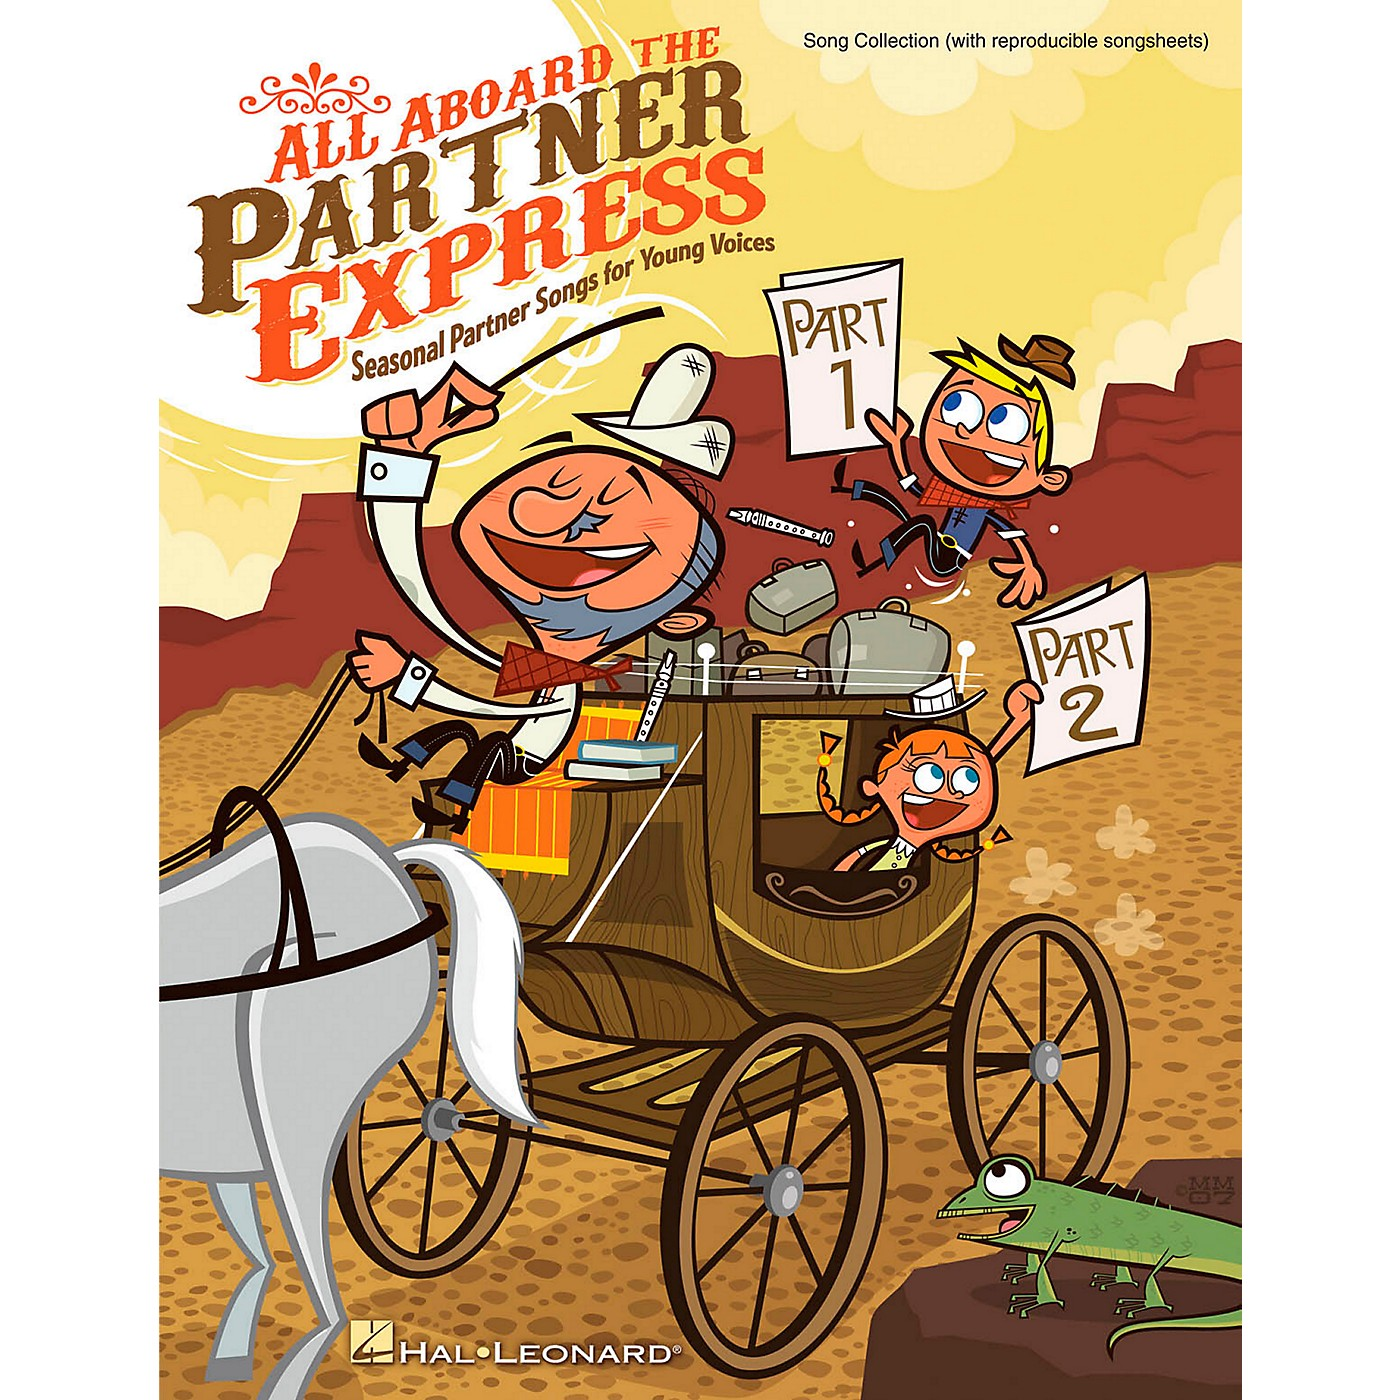 Hal Leonard All Aboard The Partner Express - Seasonal Partner Songs for Young Voices ShowTrax CD thumbnail